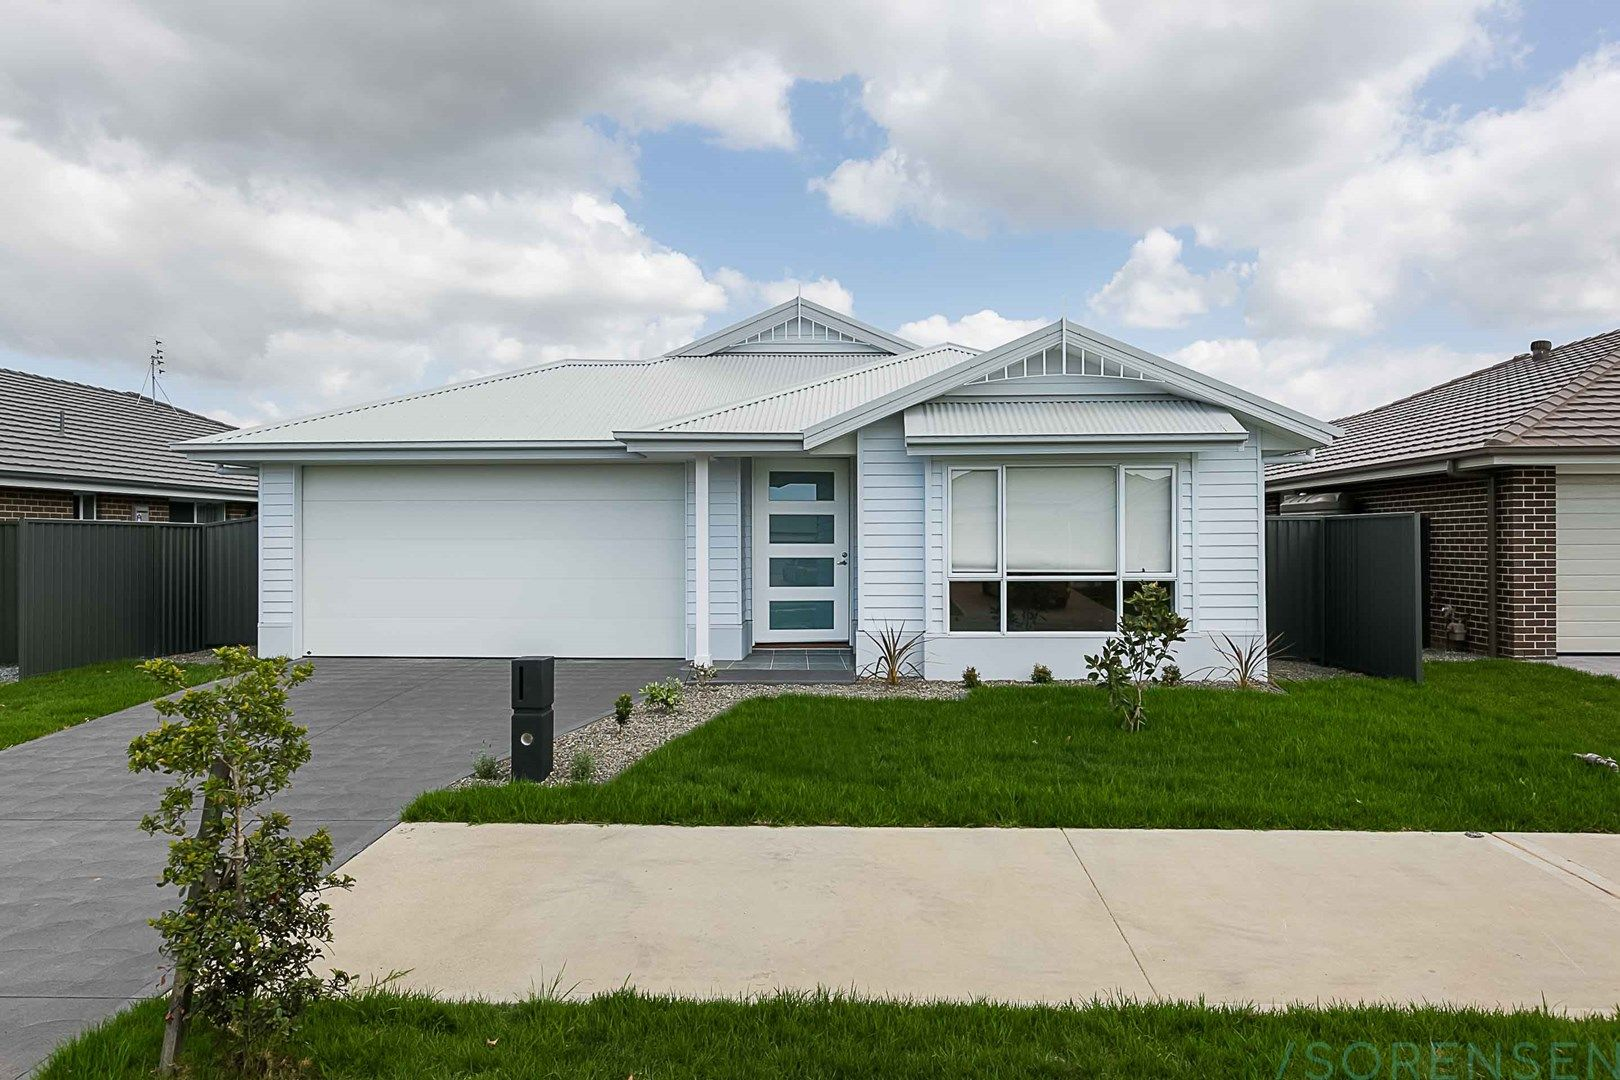 73 Sorrento Way, Hamlyn Terrace NSW 2259, Image 0